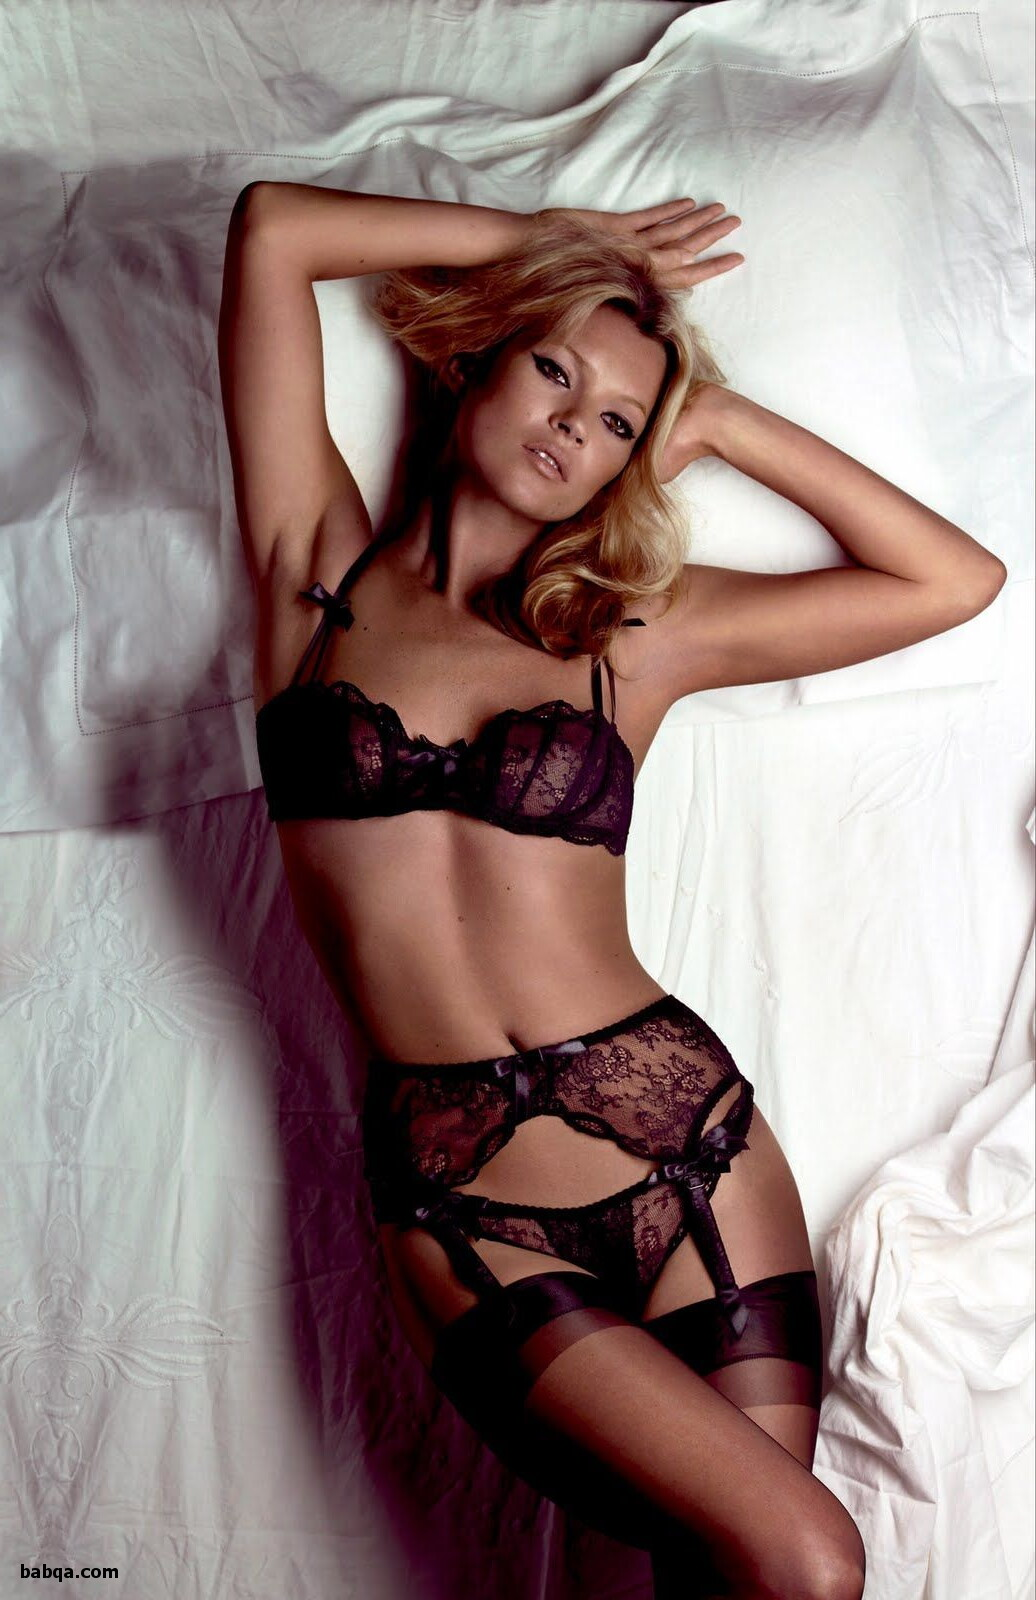 old mature stockings and hot sexy nude lingerie